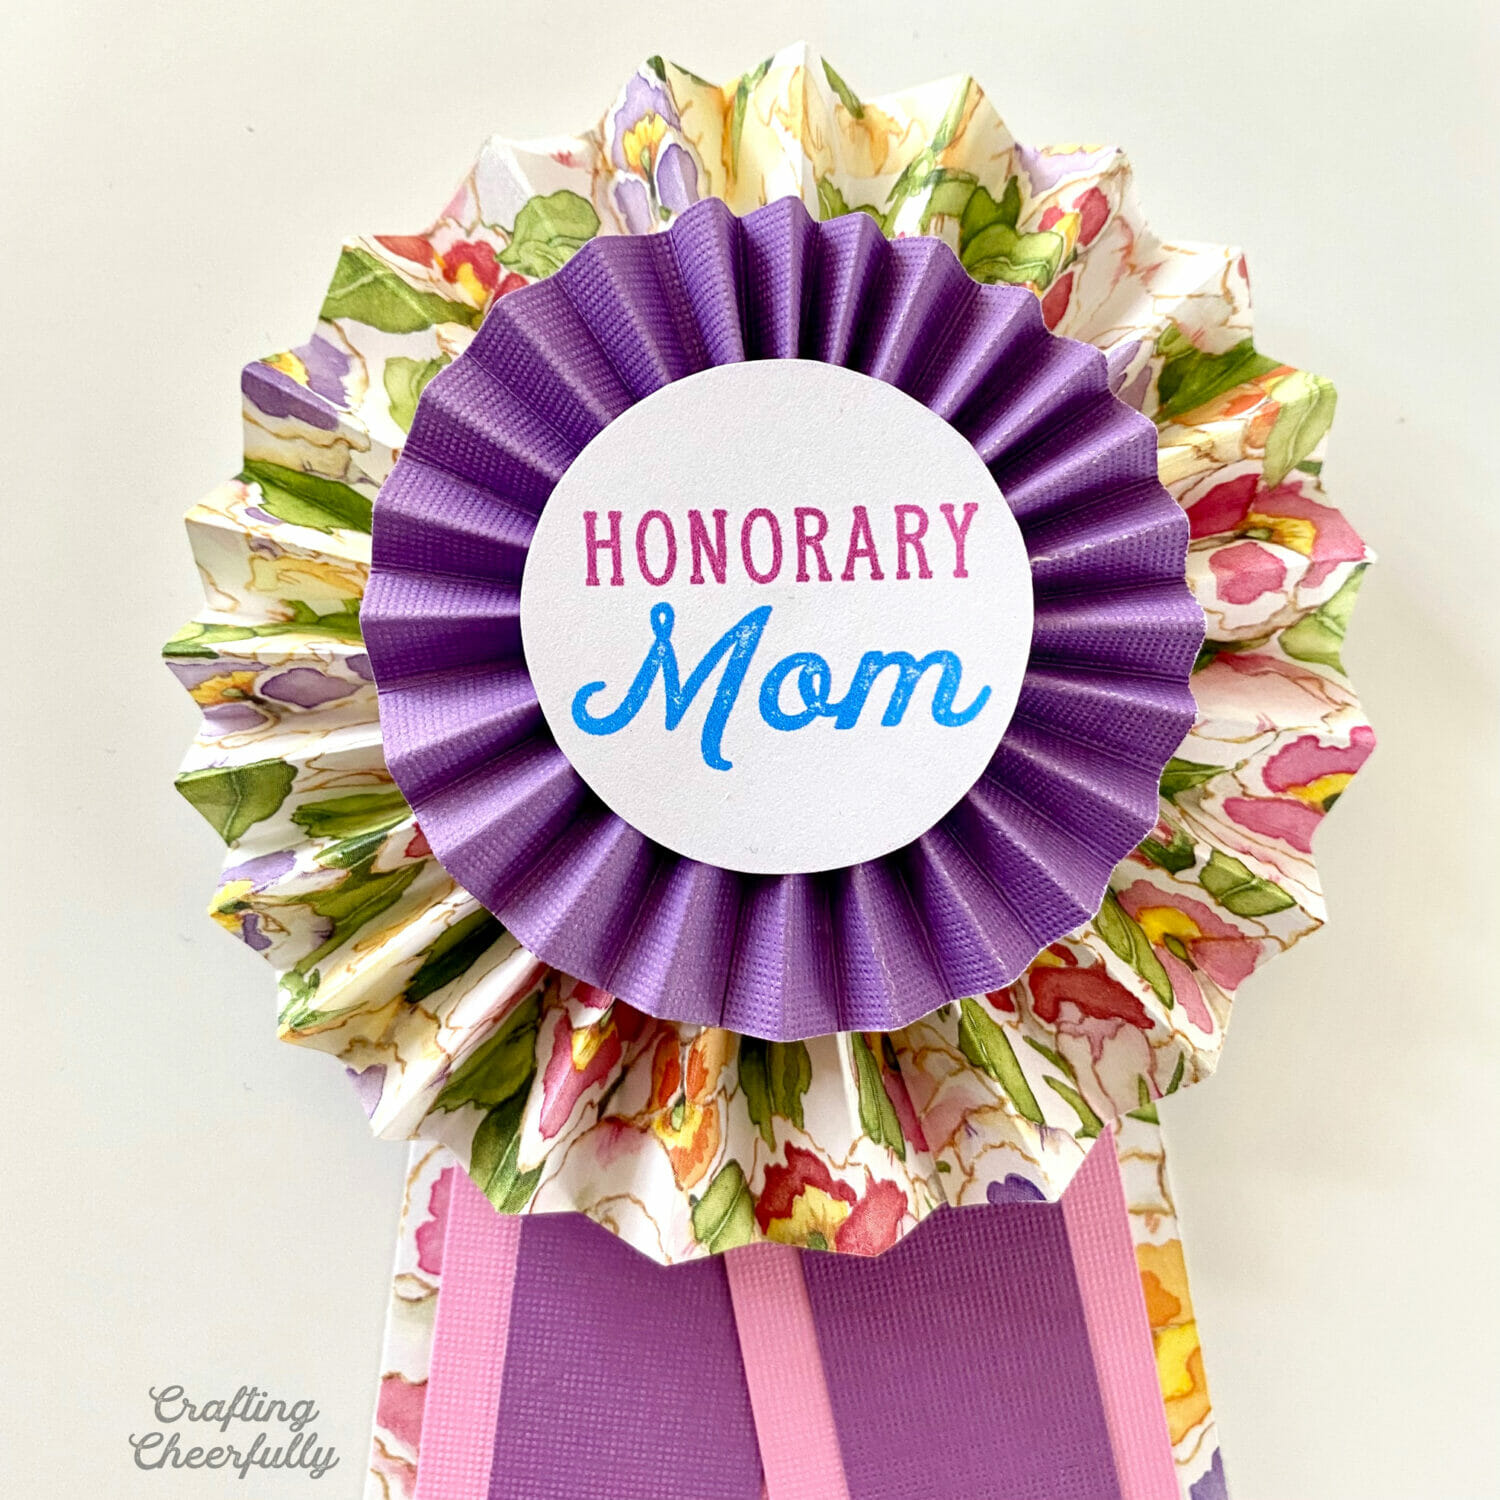 """Paper medallion pin with the words """"Honorary Mom"""" written on it."""